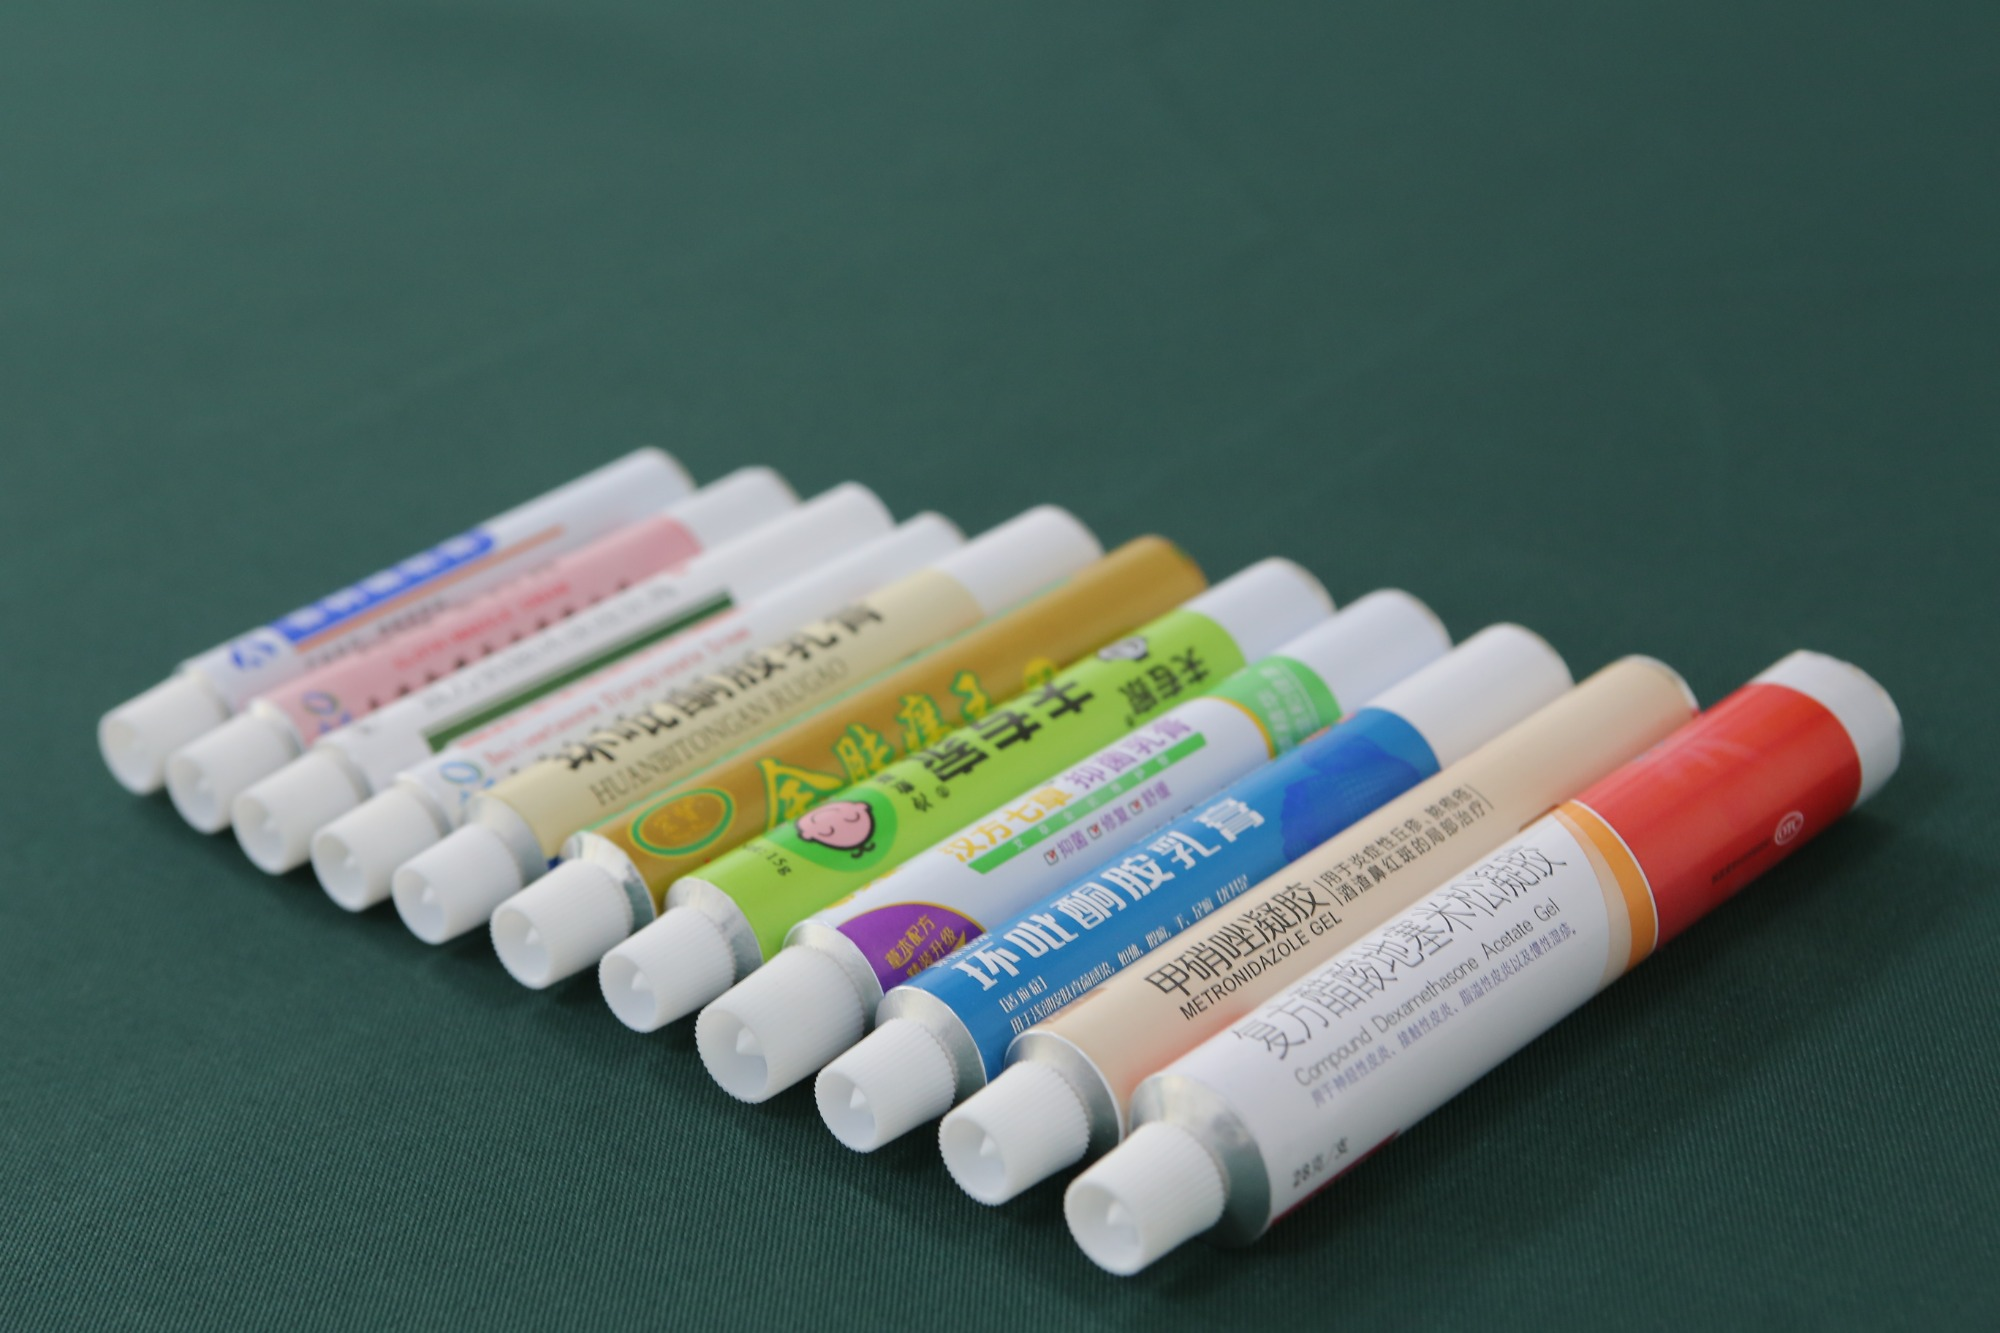 Medicinal Ointment & Cream Tubes Packaging Requirements